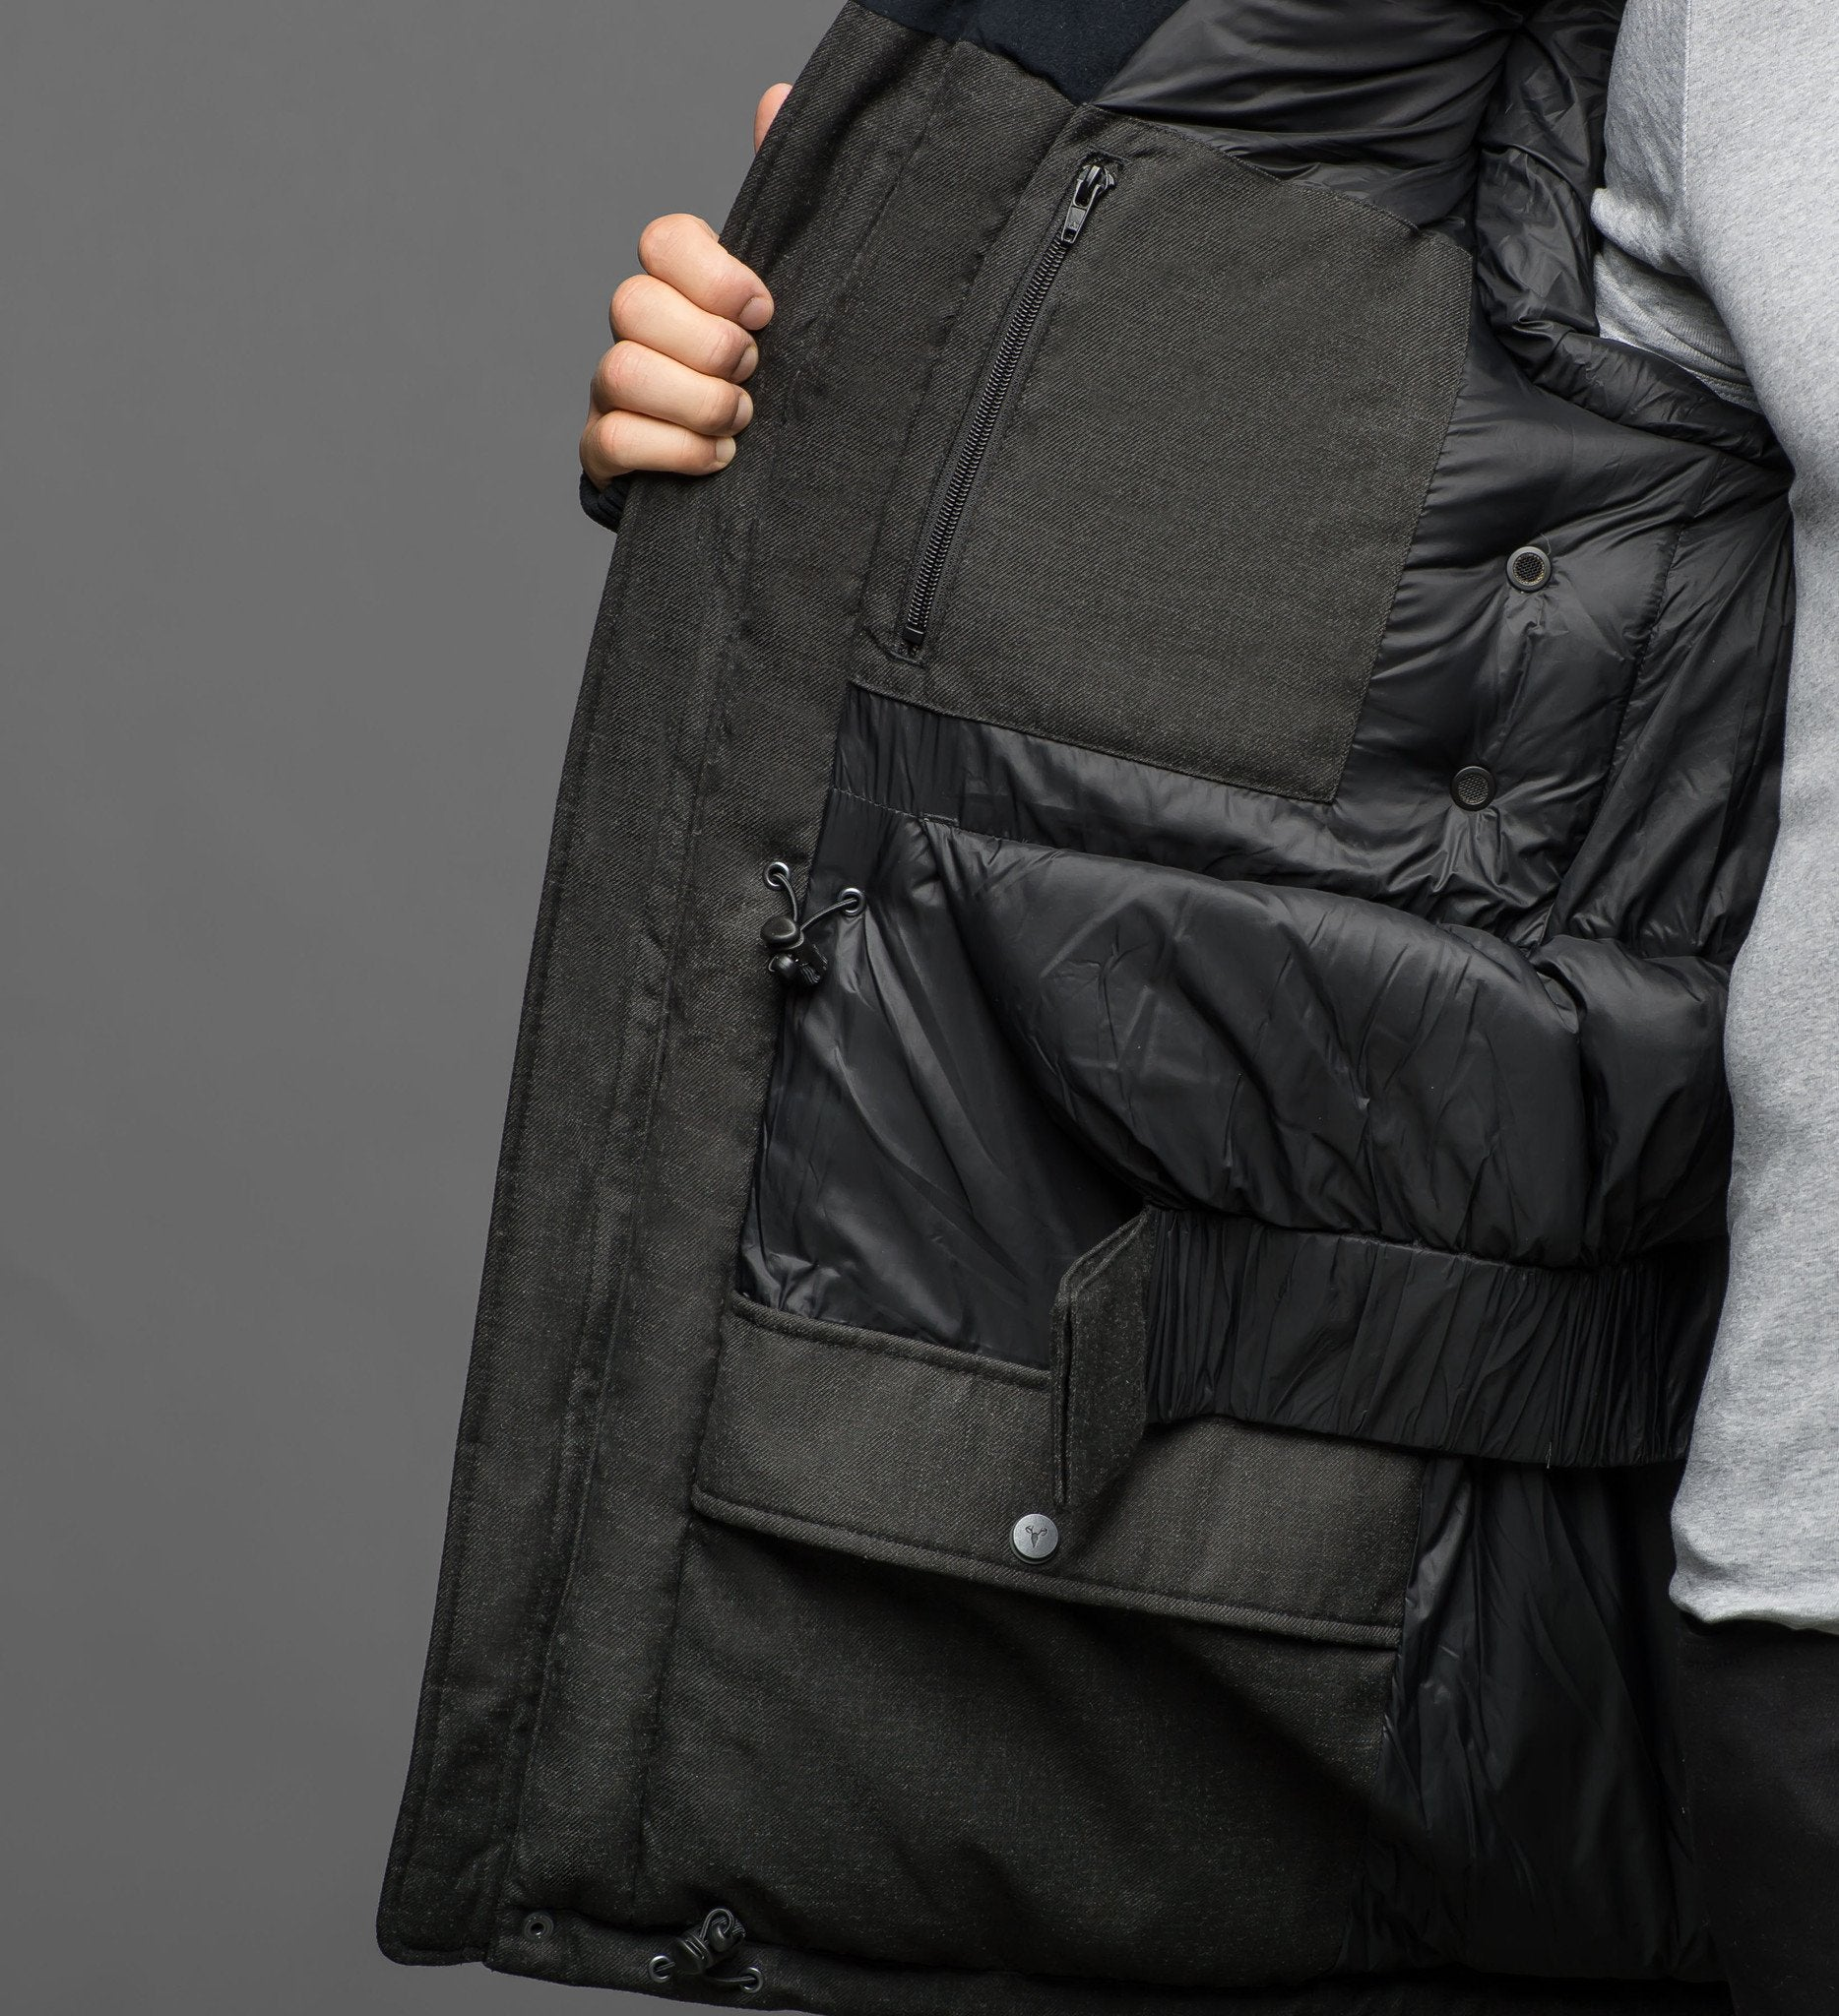 Men's extreme wamrth down filled parka with baffle box construction for even down distribution in H. Charcoal or H. Red | color